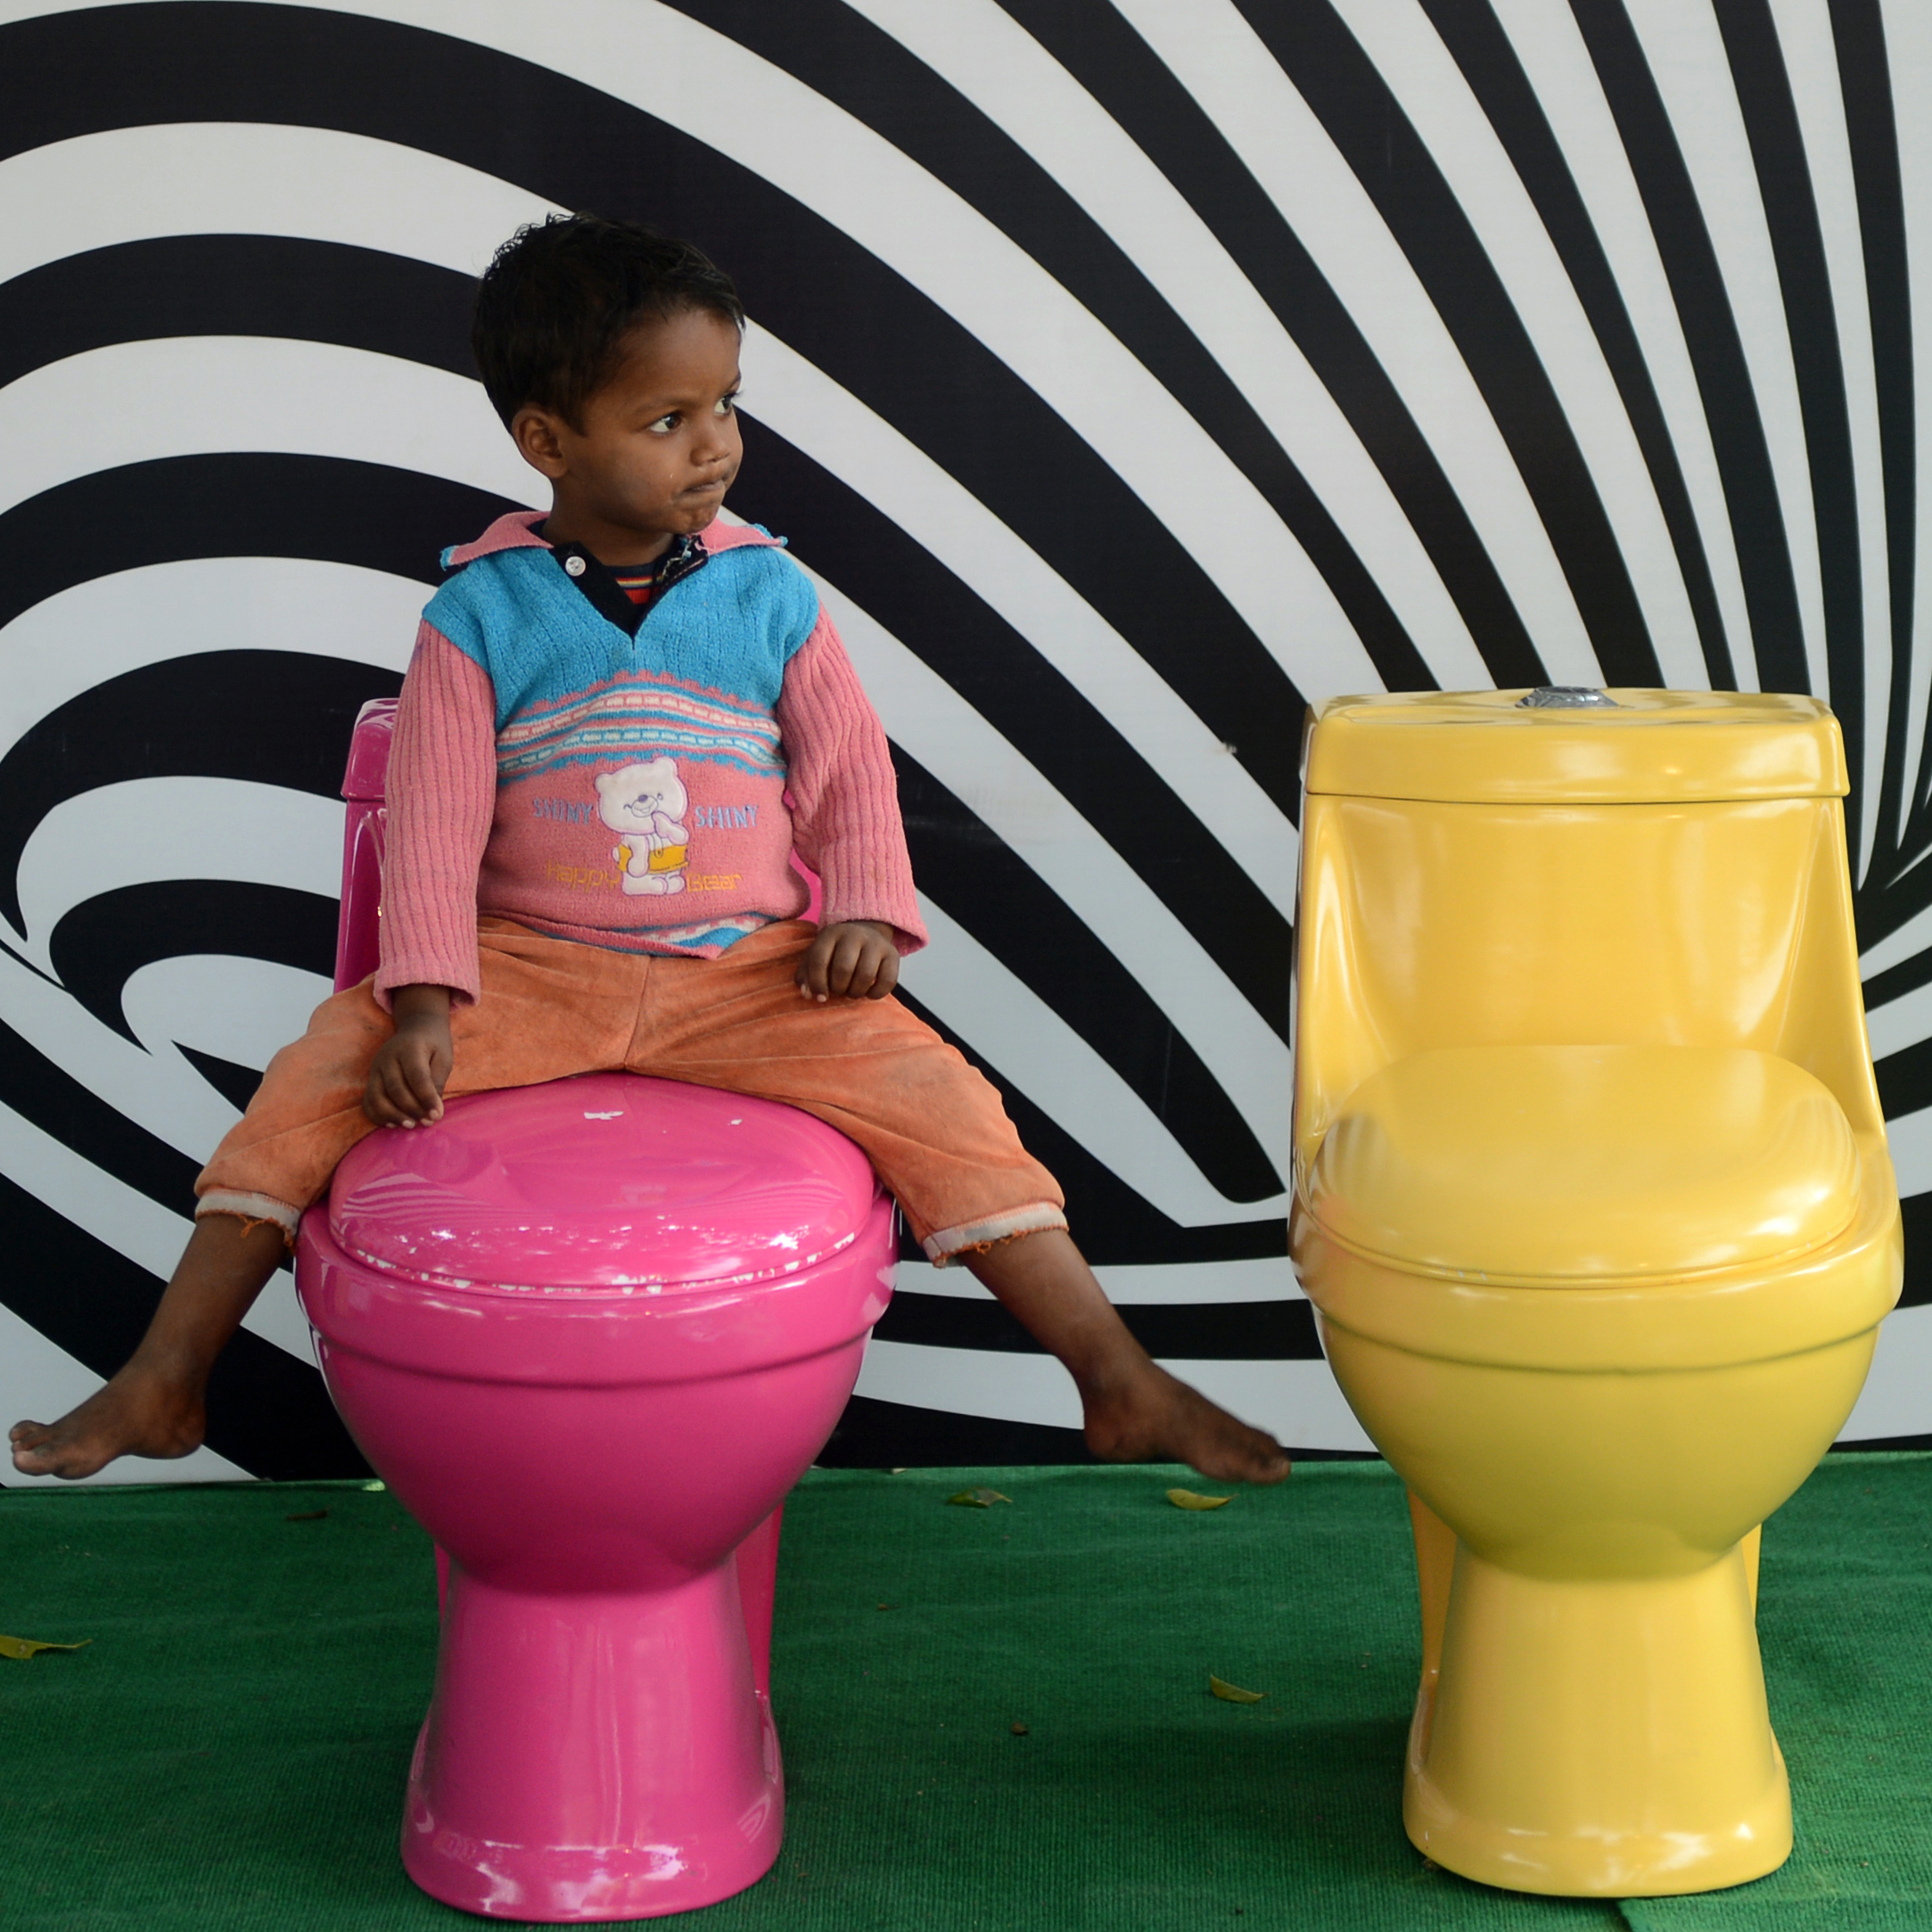 An Indian child plays on toilets during a sanitation campaign in New Delhi, November 2012. More than 130 million Indian households still have no clean latrines.